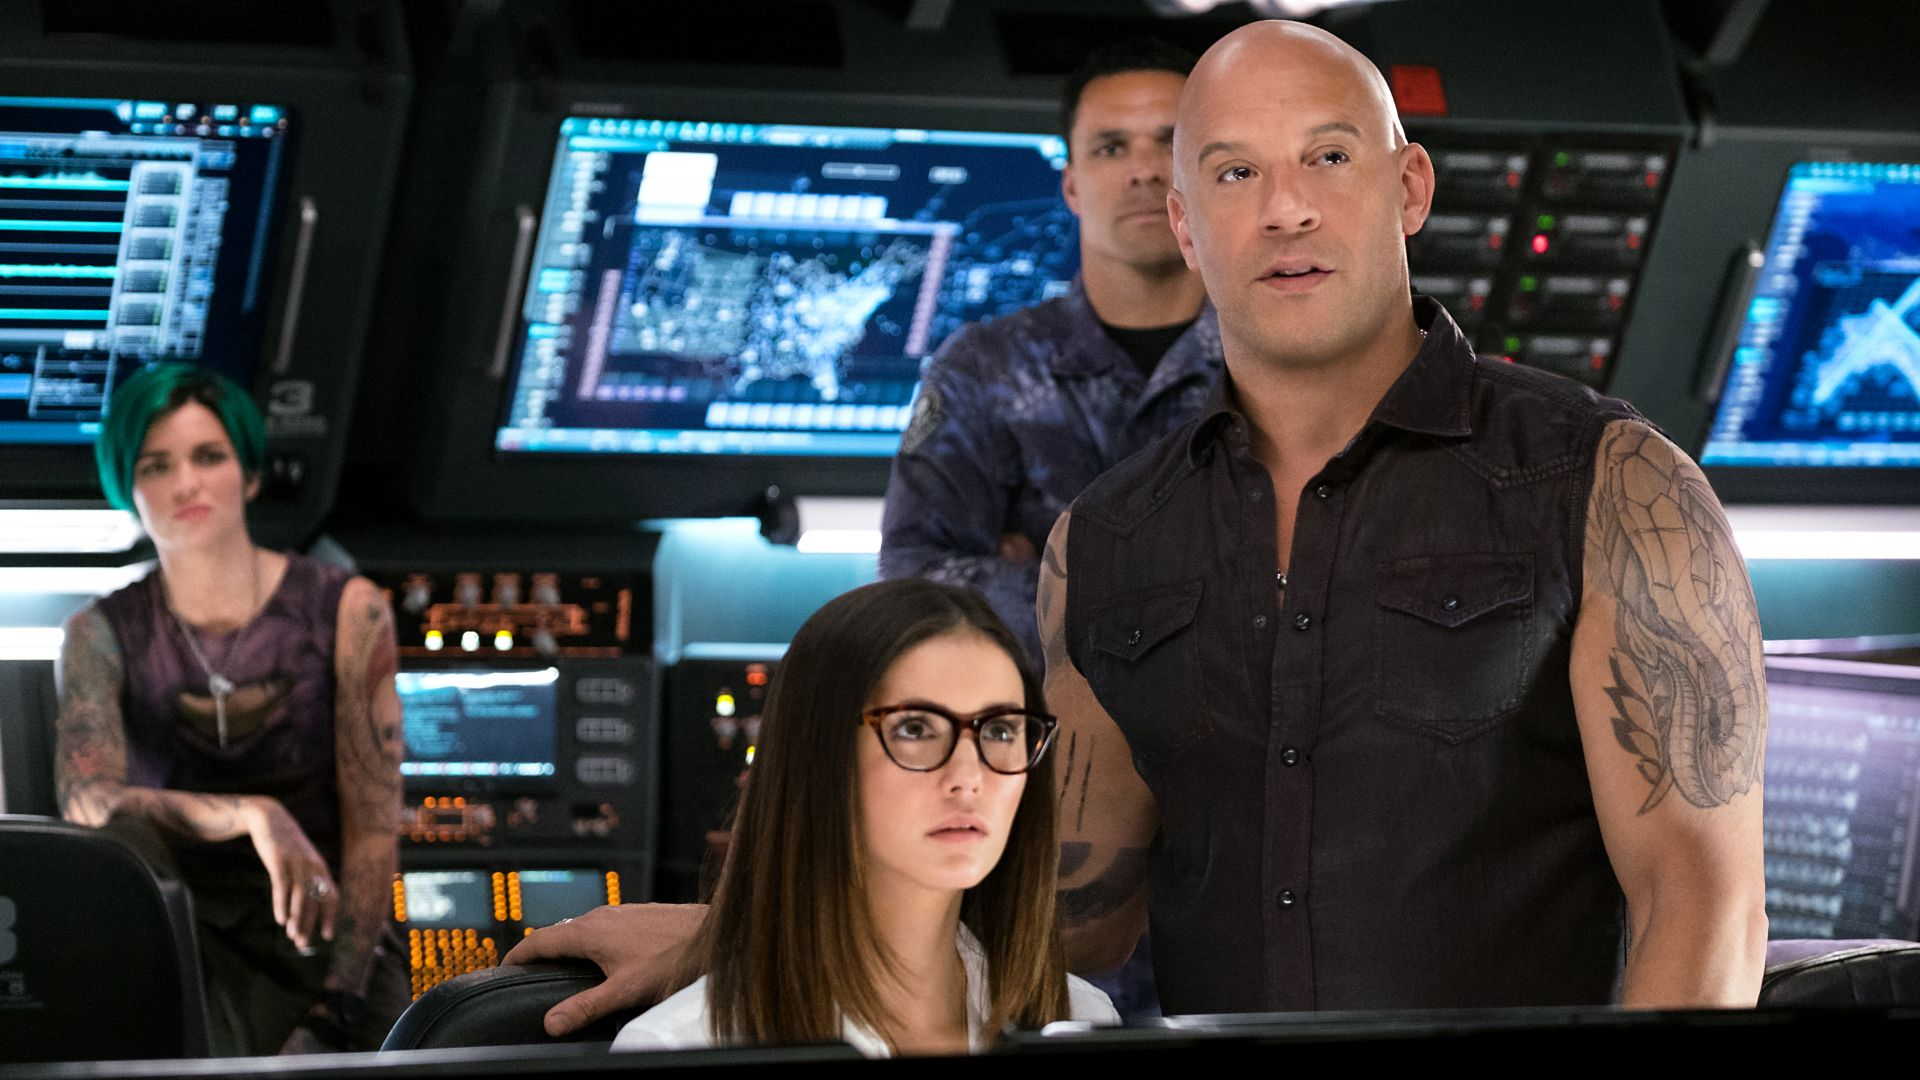 xXx: Return of Xander Cage, Vin Diesel, Nina Dobrev (horizontal)